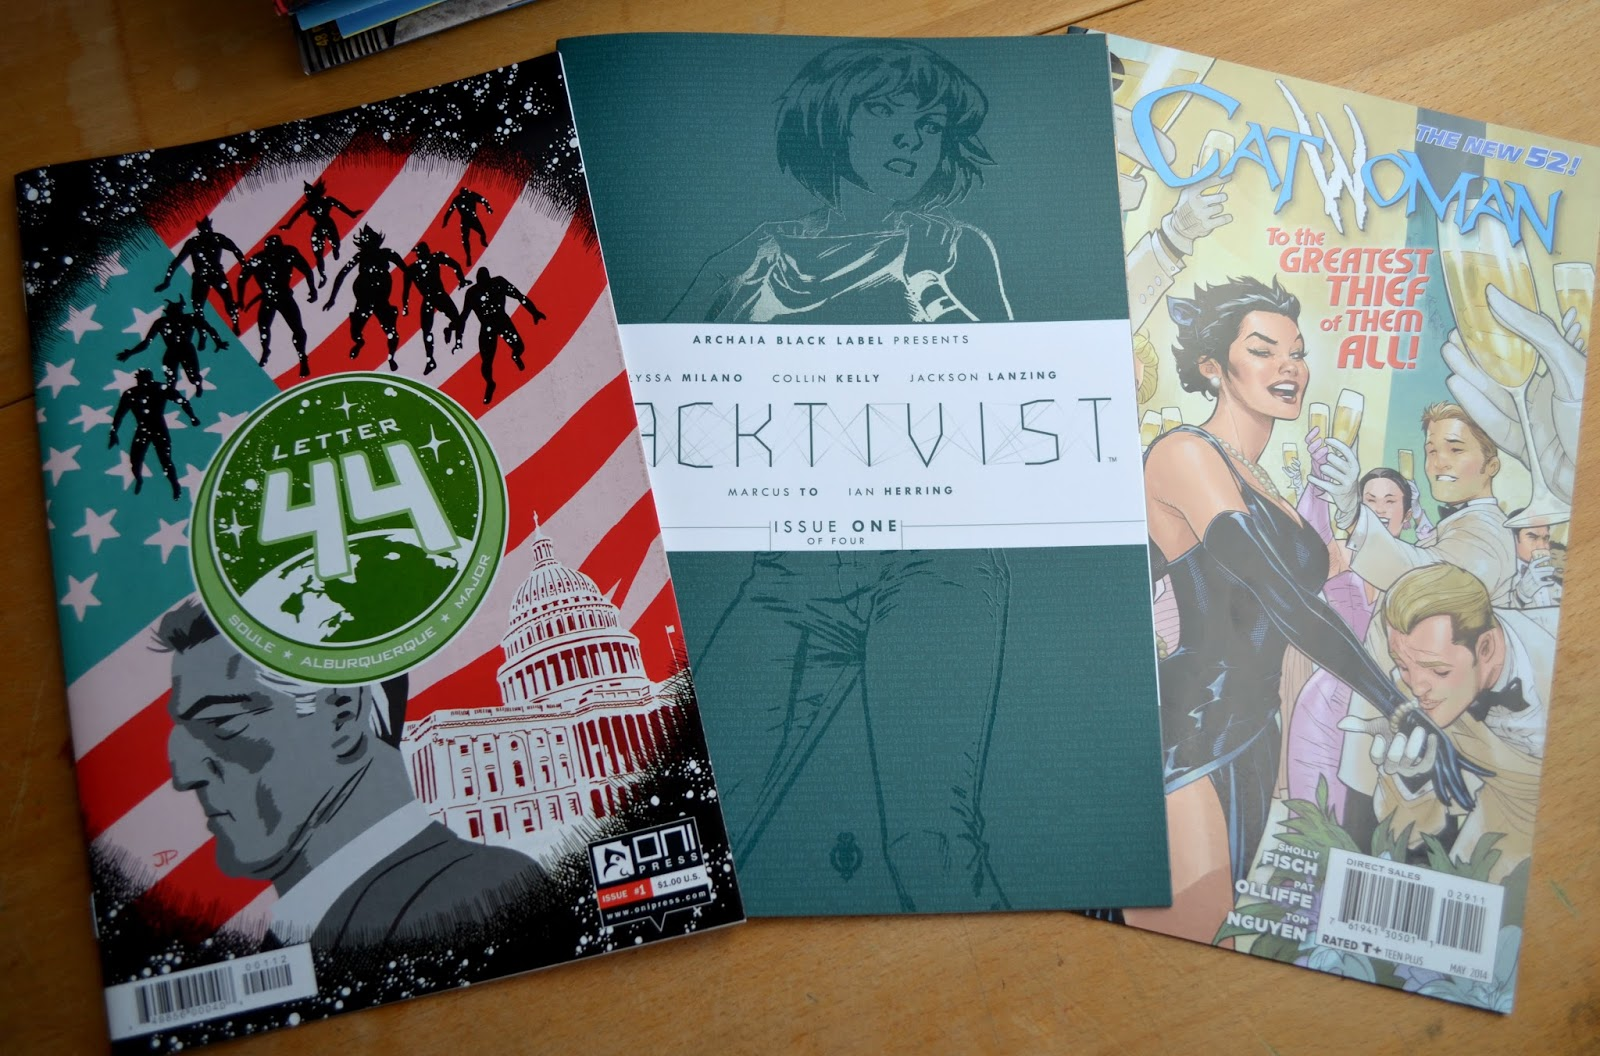 Letter 44 #1 and Hacktivist #1 comic books